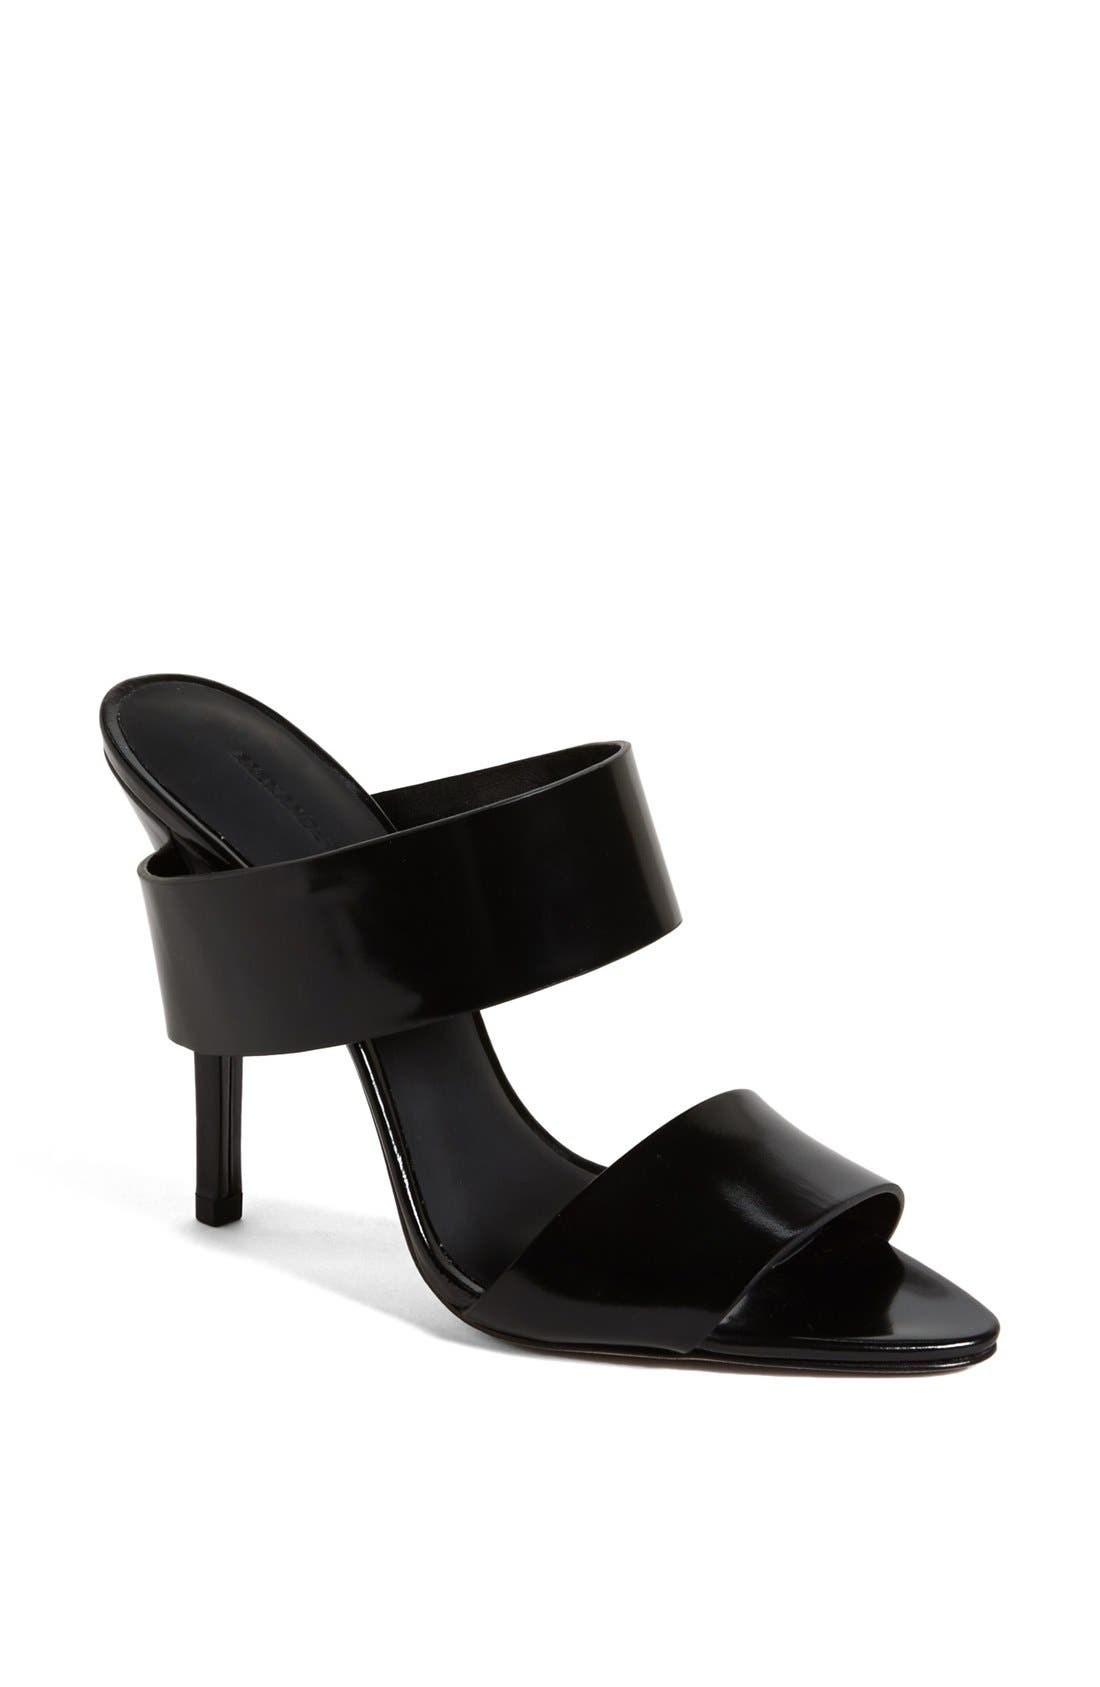 Alternate Image 1 Selected - Alexander Wang 'Marsha' Open Toe Mule Sandal